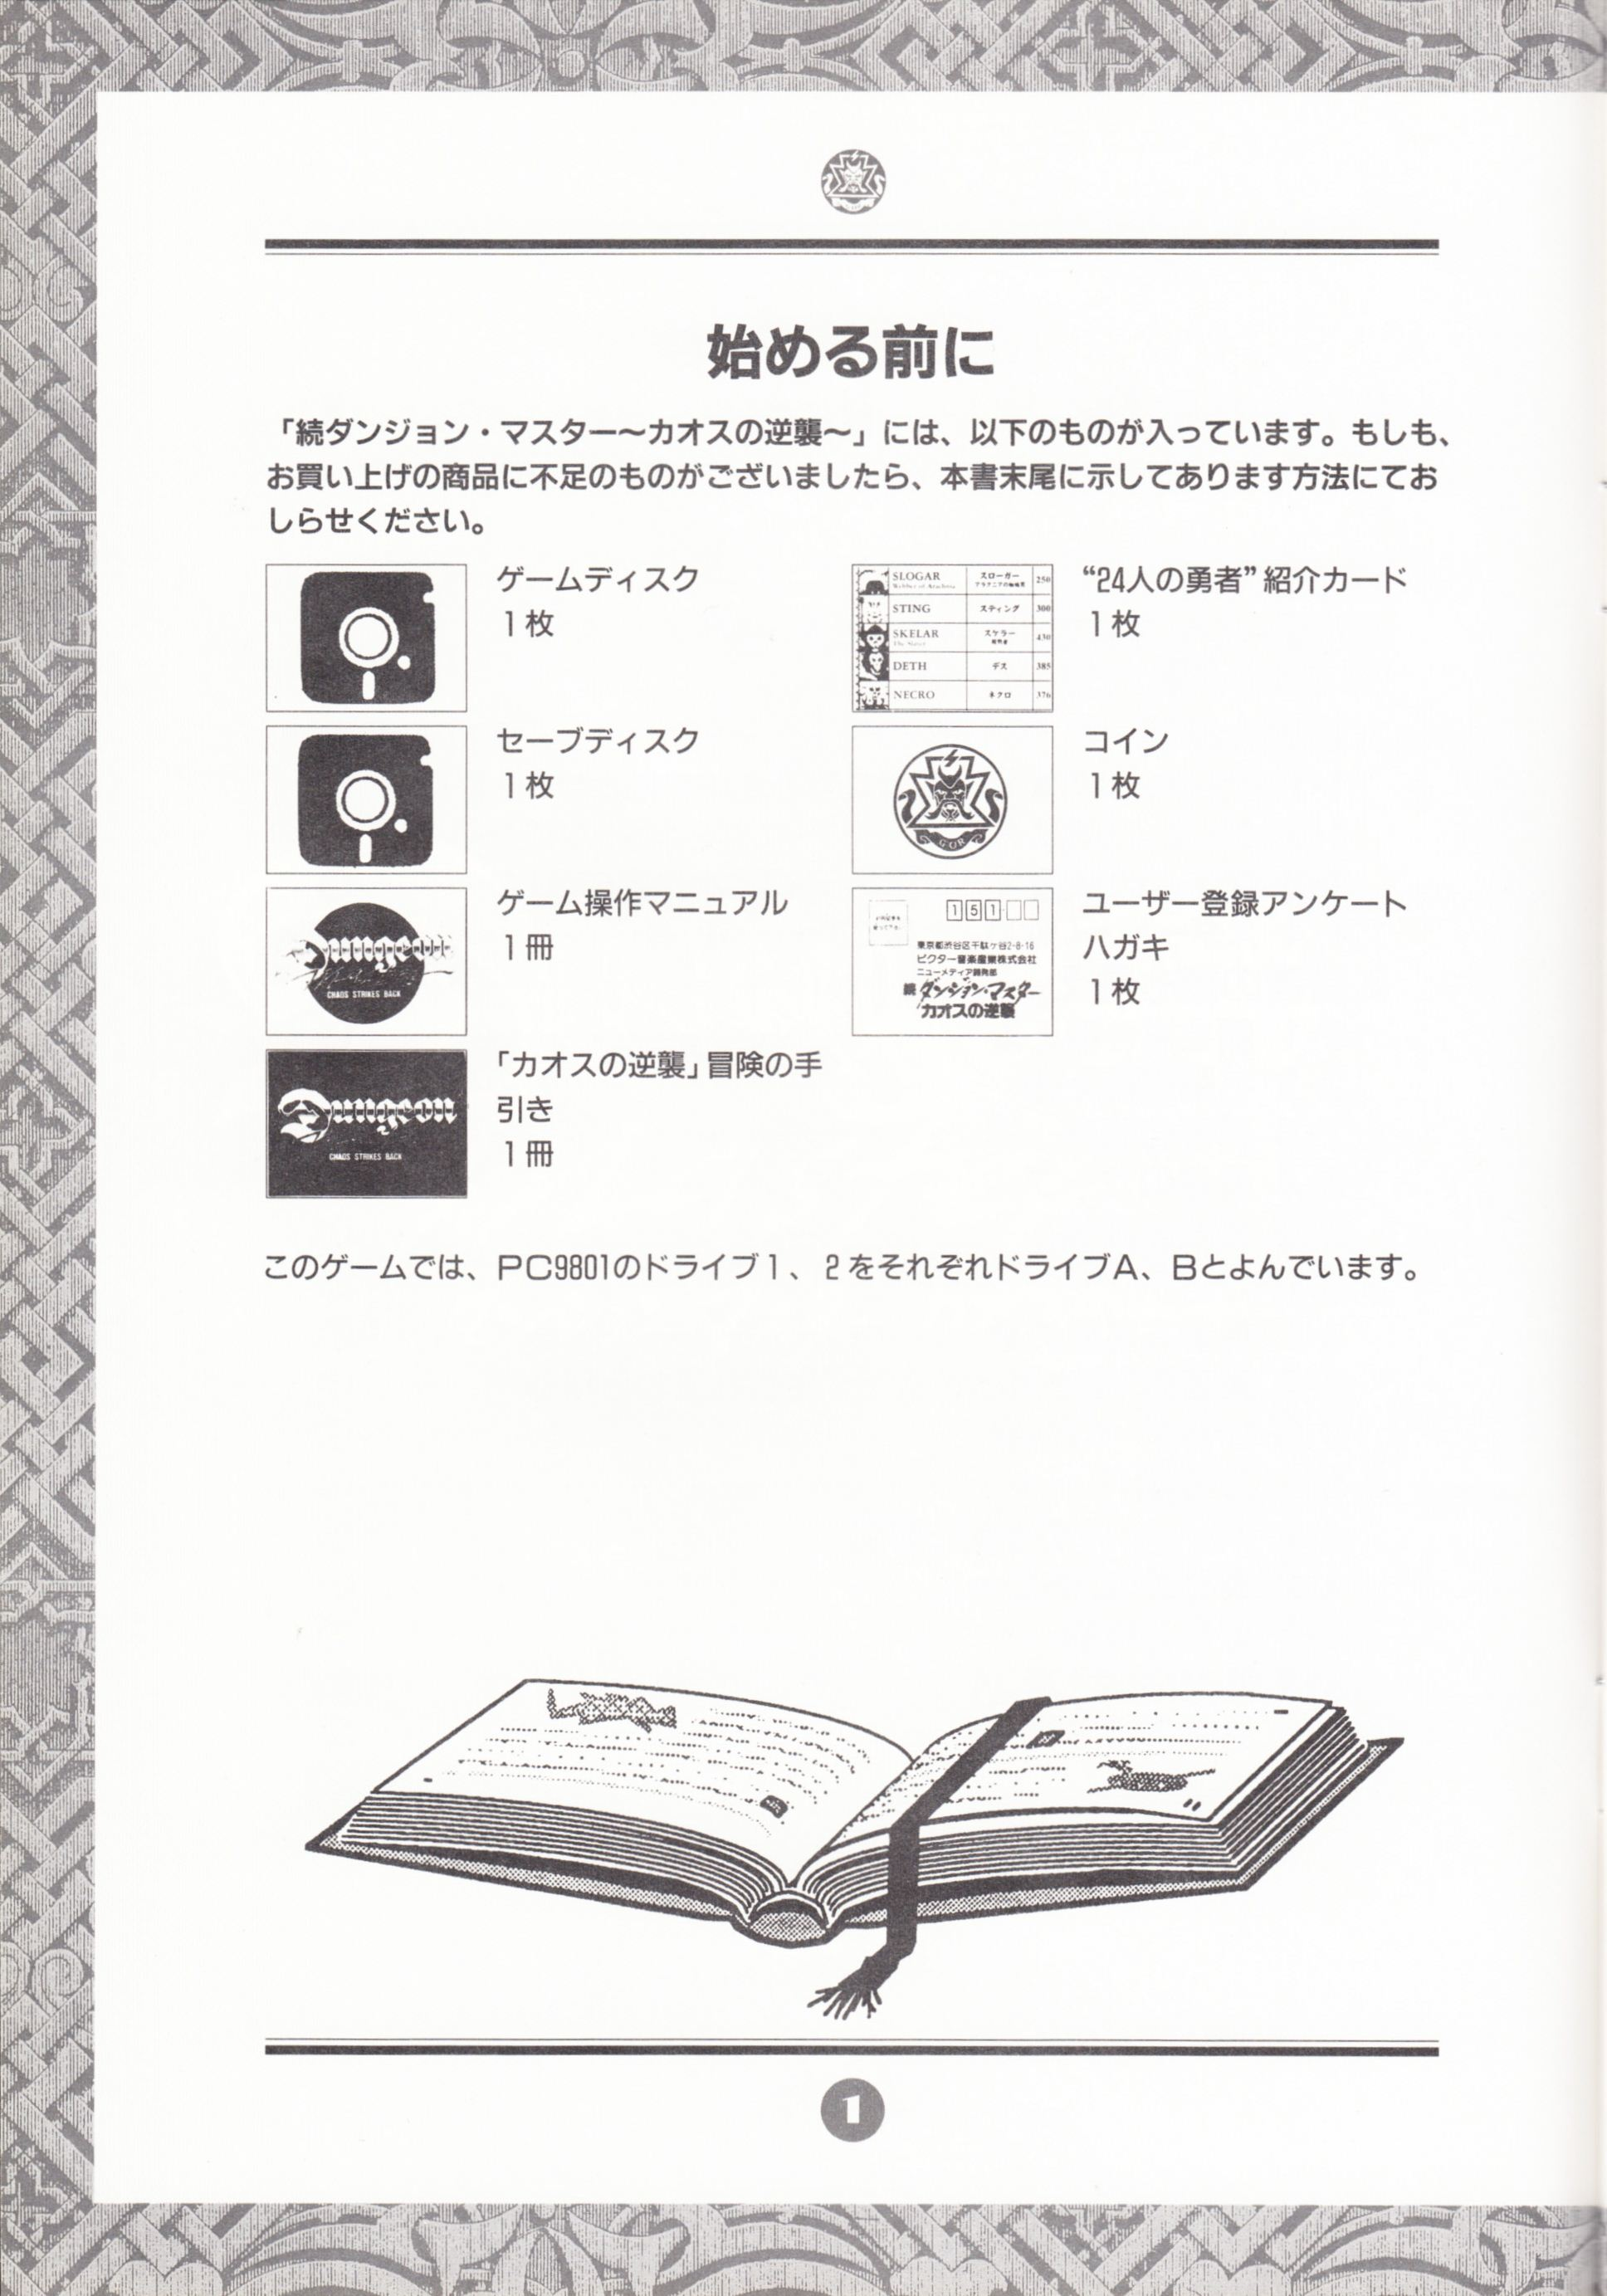 Game - Chaos Strikes Back - JP - PC-9801 - 5.25-inch - An Operation Manual - Page 004 - Scan